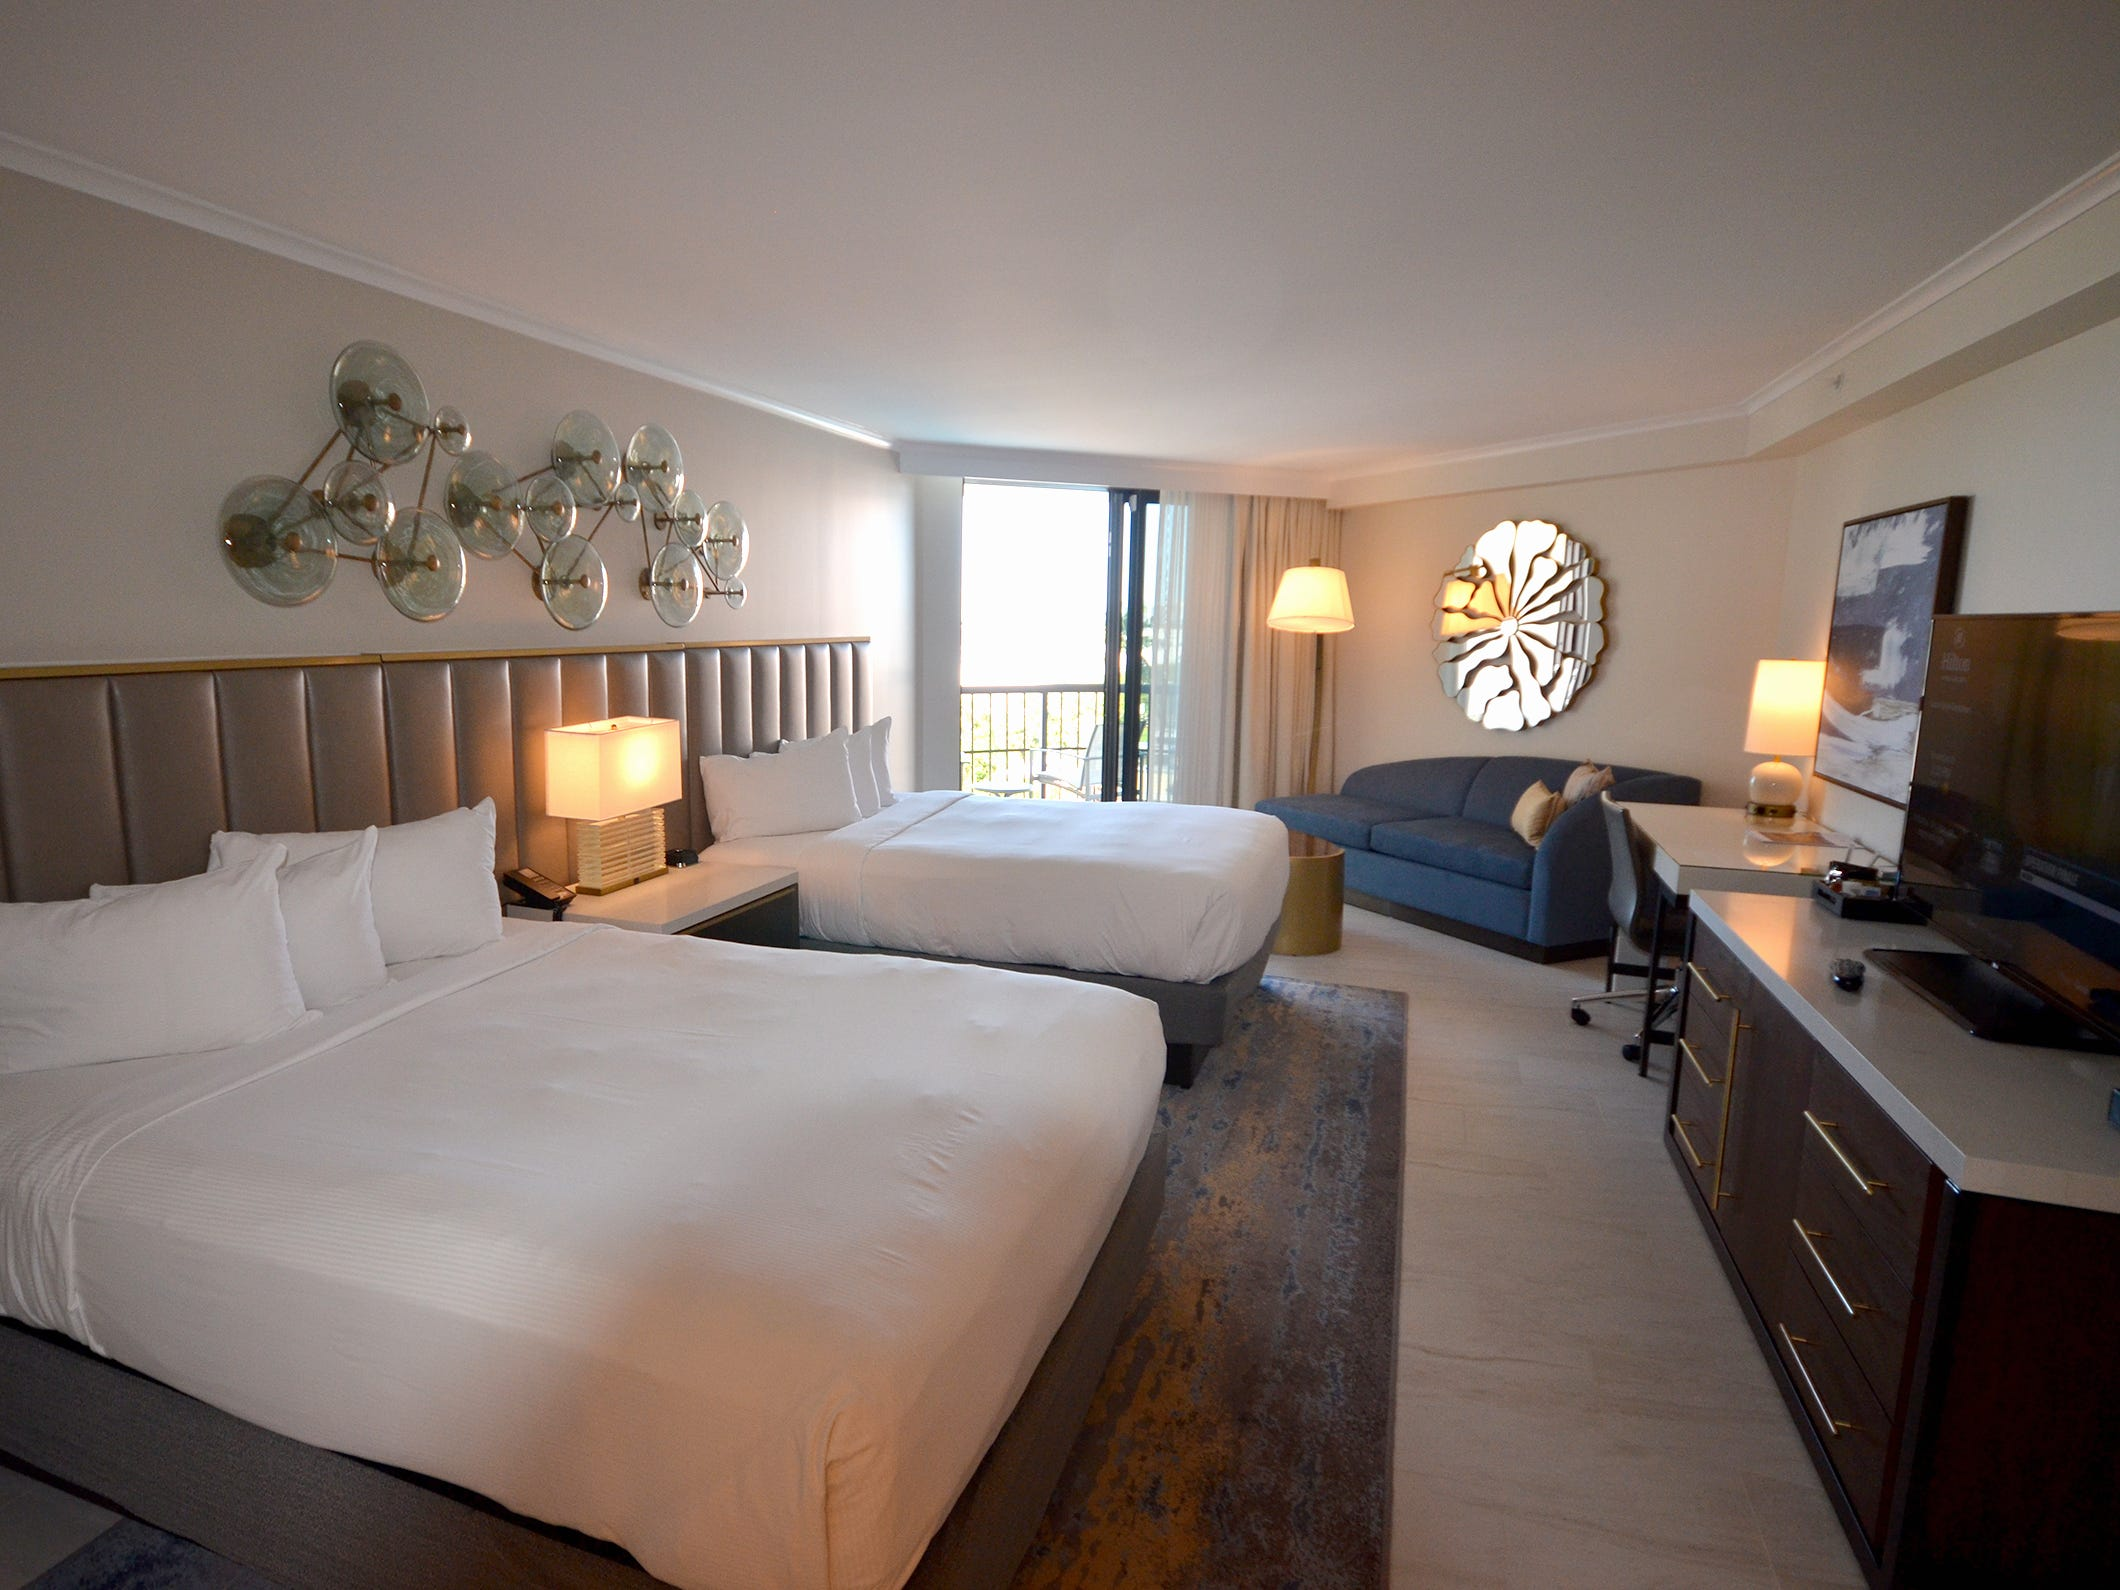 A guest room in the newly renovated Marco Island Beach Resort & Spa.